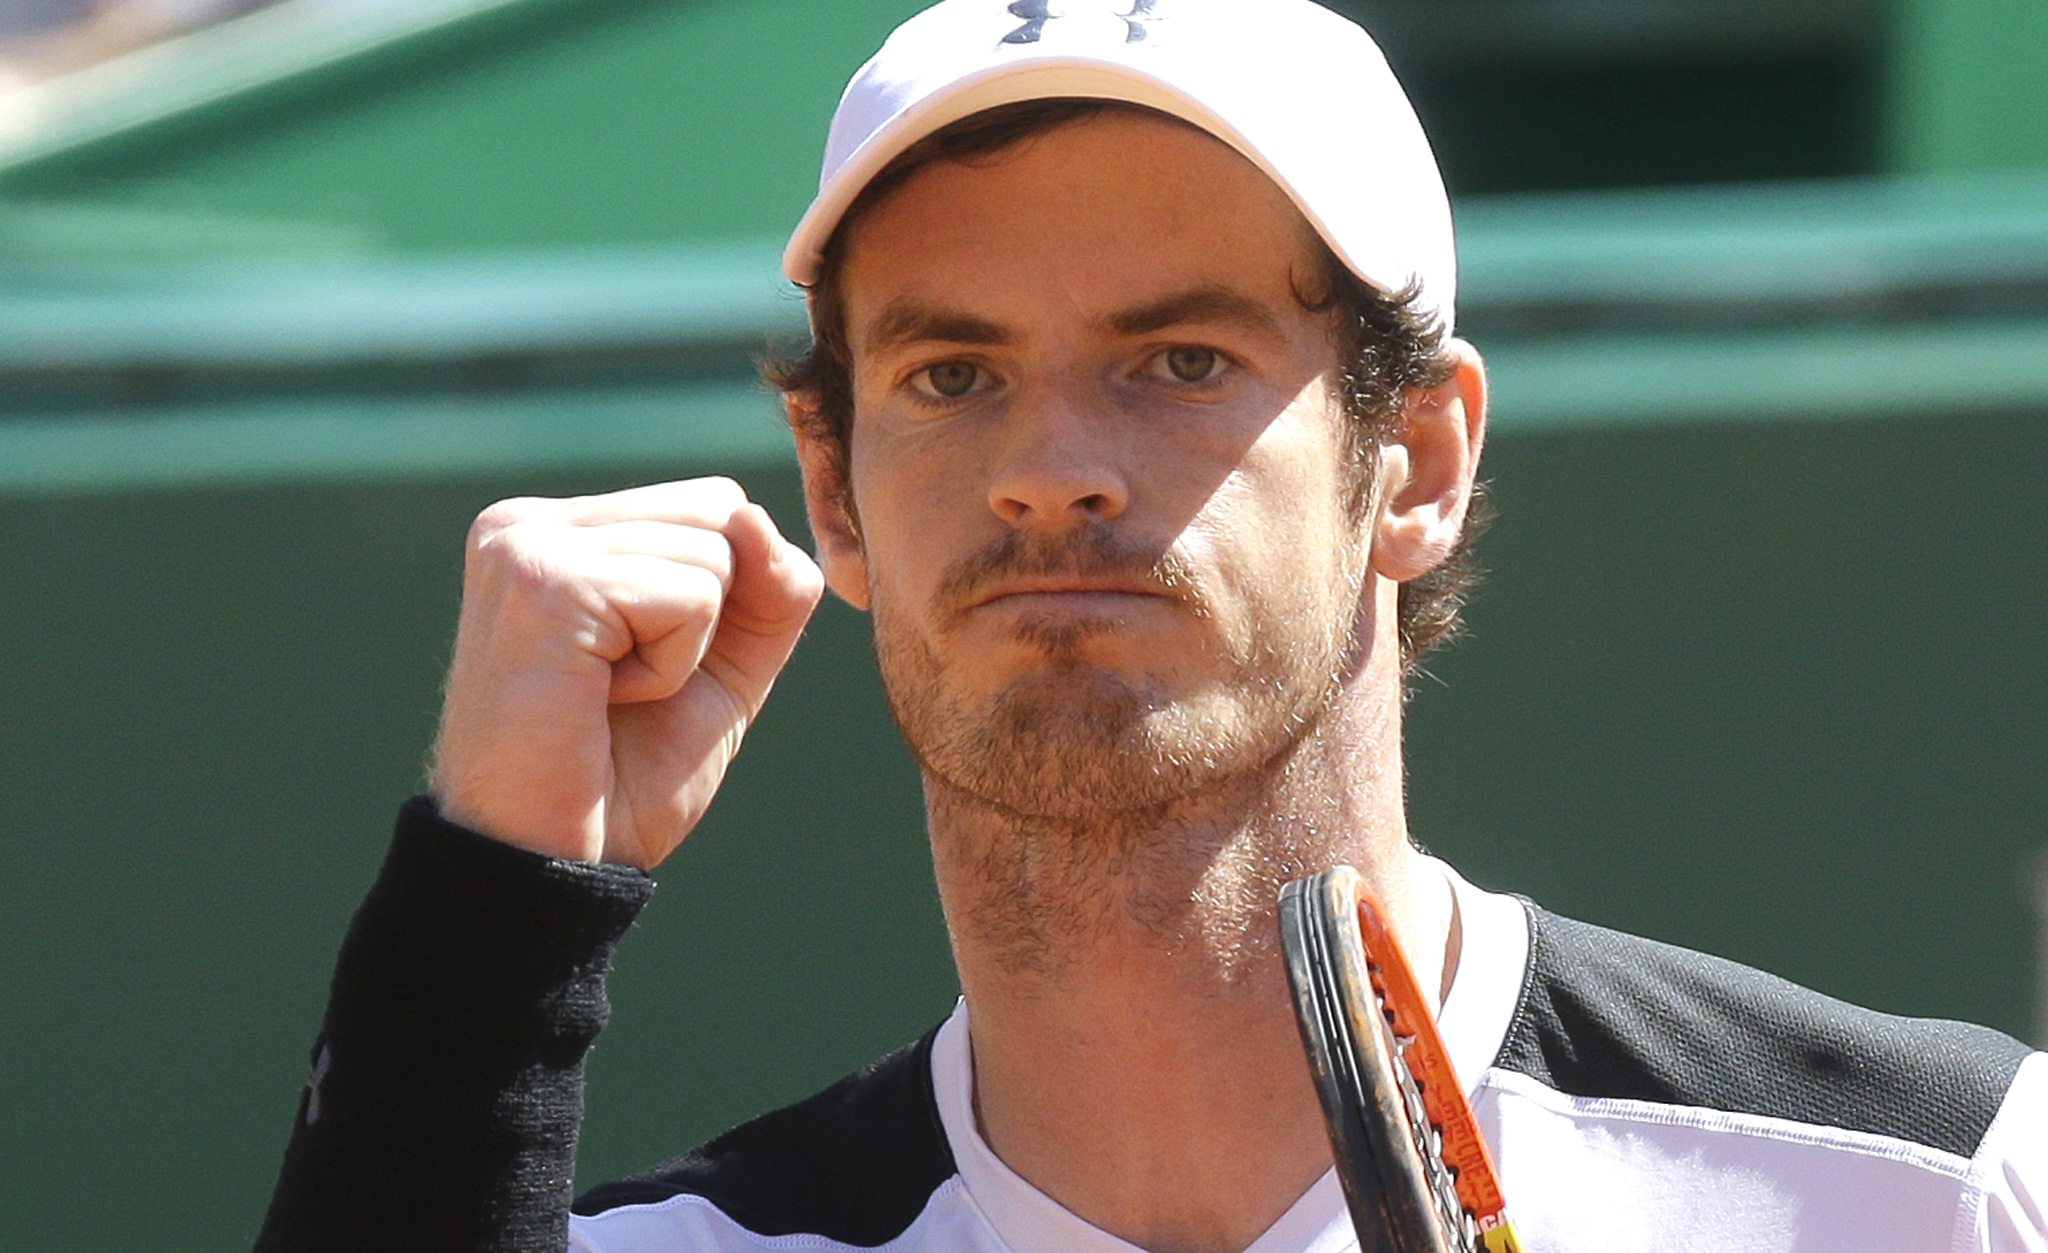 Andy Murray of  Britain reacts after defeating  Canada's Milos Raonic after their quarter final match of the Monte Carlo Tennis Masters tournament in Monaco, Friday, April 15, 2016. (AP Photo/Lionel Cironneau)